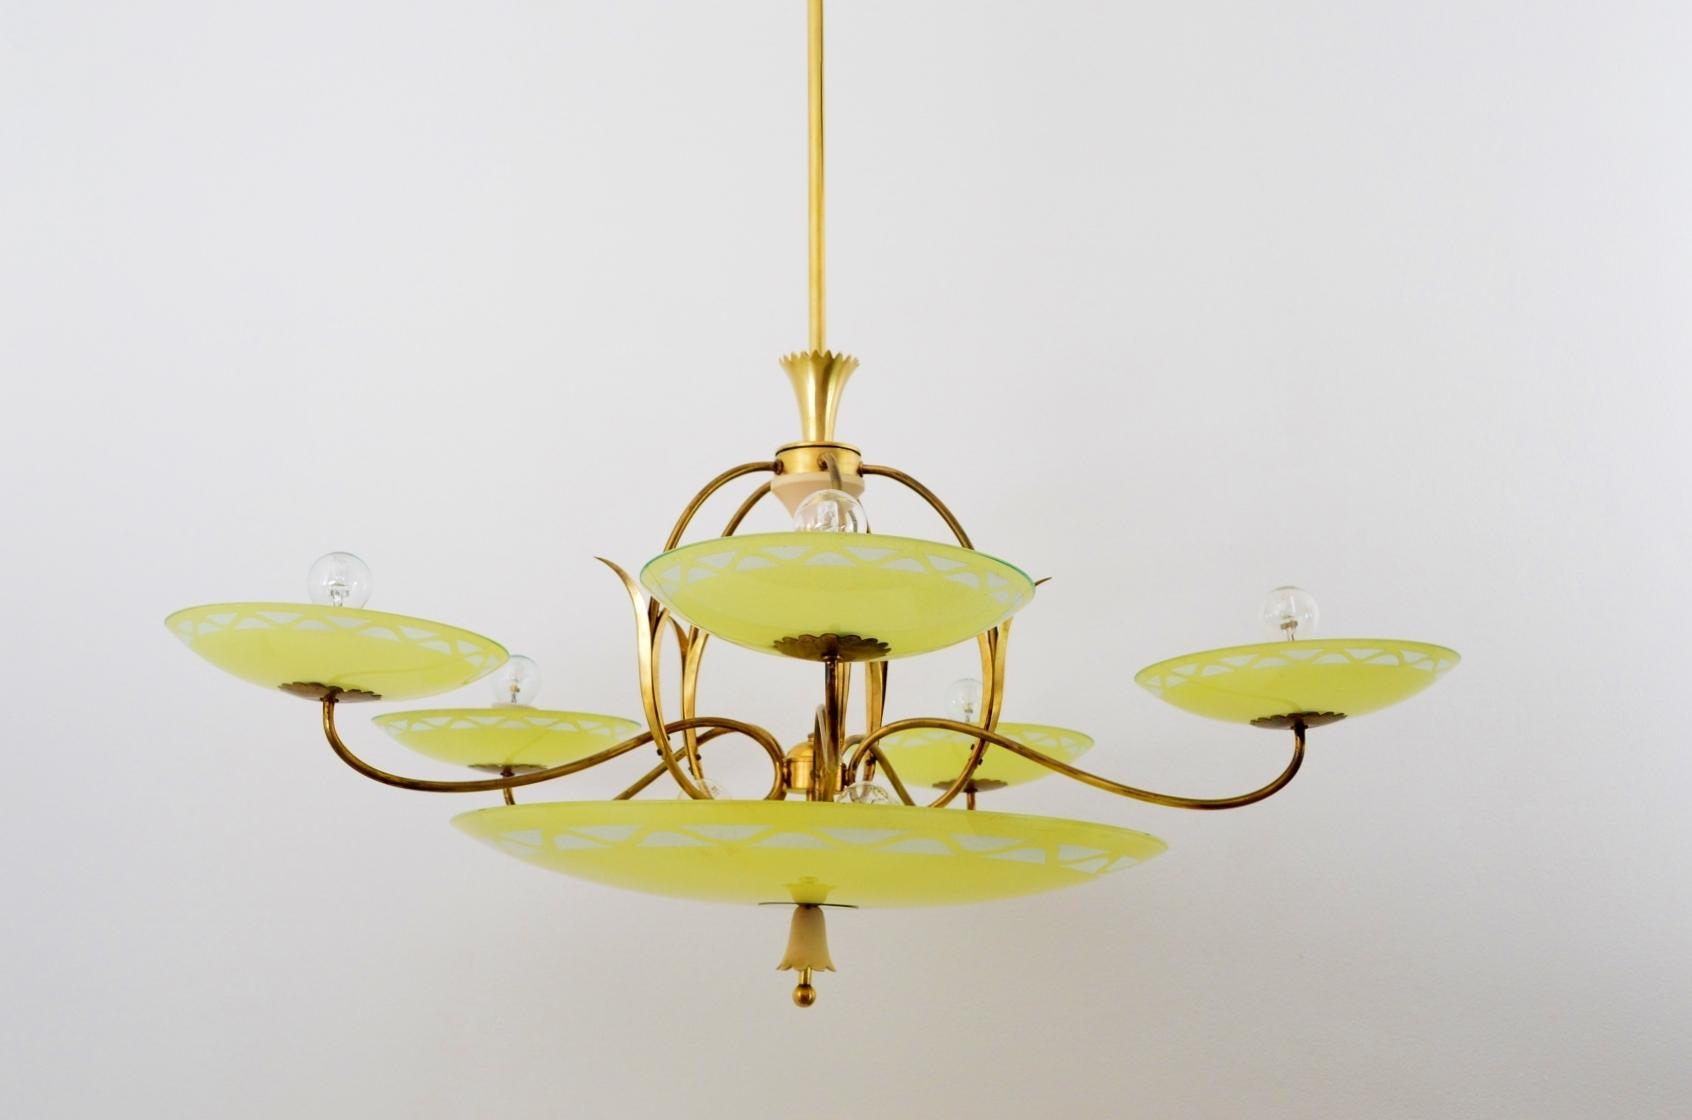 Large Vintage Italian Art Deco Five Arm Brass Yellow Glass Intended For Large Glass Chandelier (View 4 of 15)